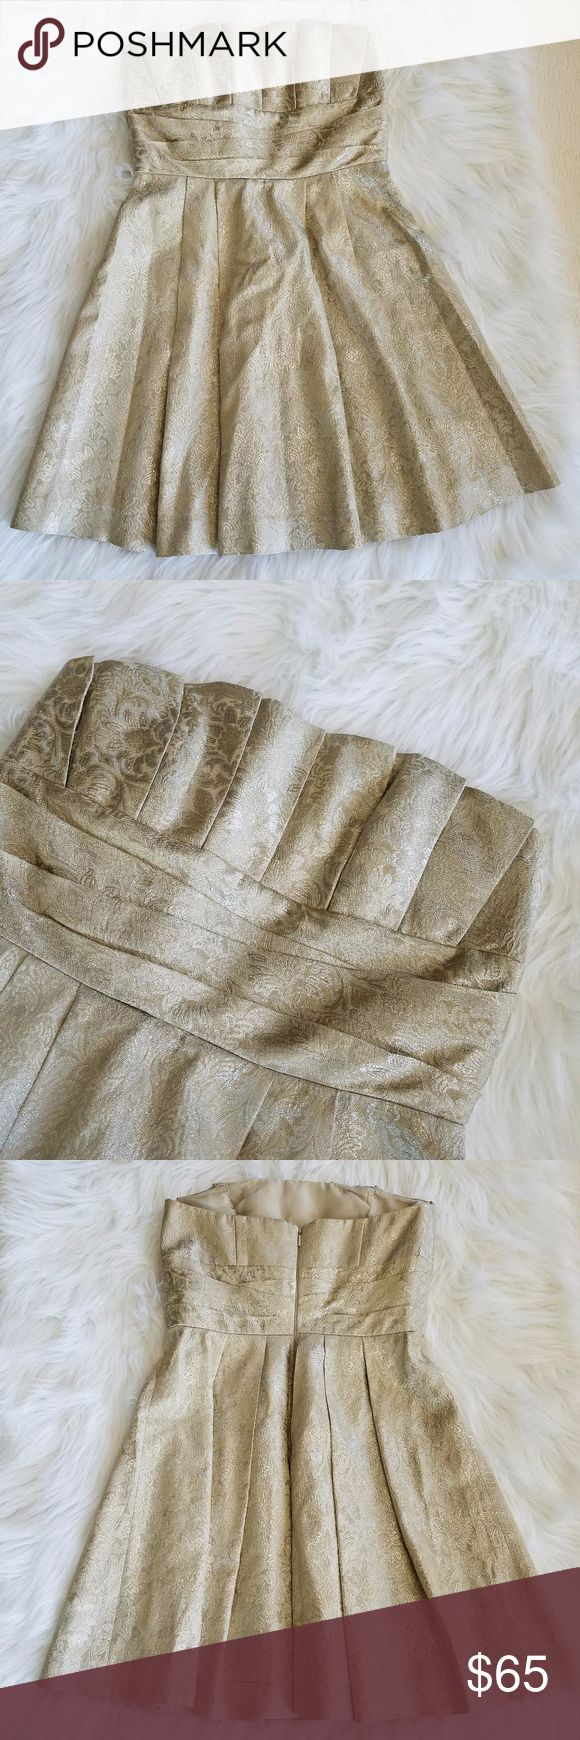 Priscilla of Boston Gold Strapless Dress Stunning gold patterned strapless dress perfect for the holidays or a wedding! Size 6 Excellent Used Condition Measurements in photos 20% off bundles of 2 or more SHIPS FAST! Priscilla of Boston Dresses Strapless